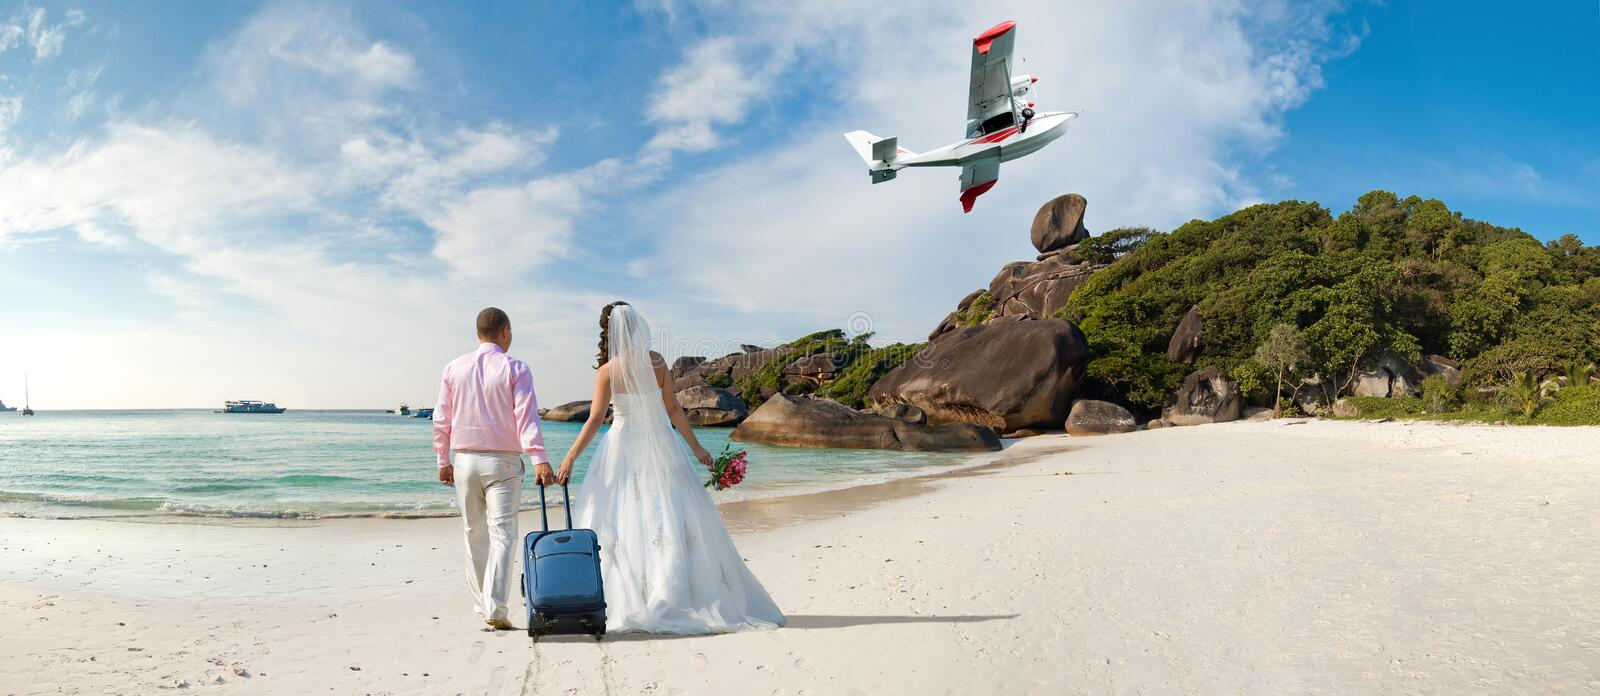 Download Honeymoon stock photo. Image of airplane, newlyweds, outdoor - 38378932